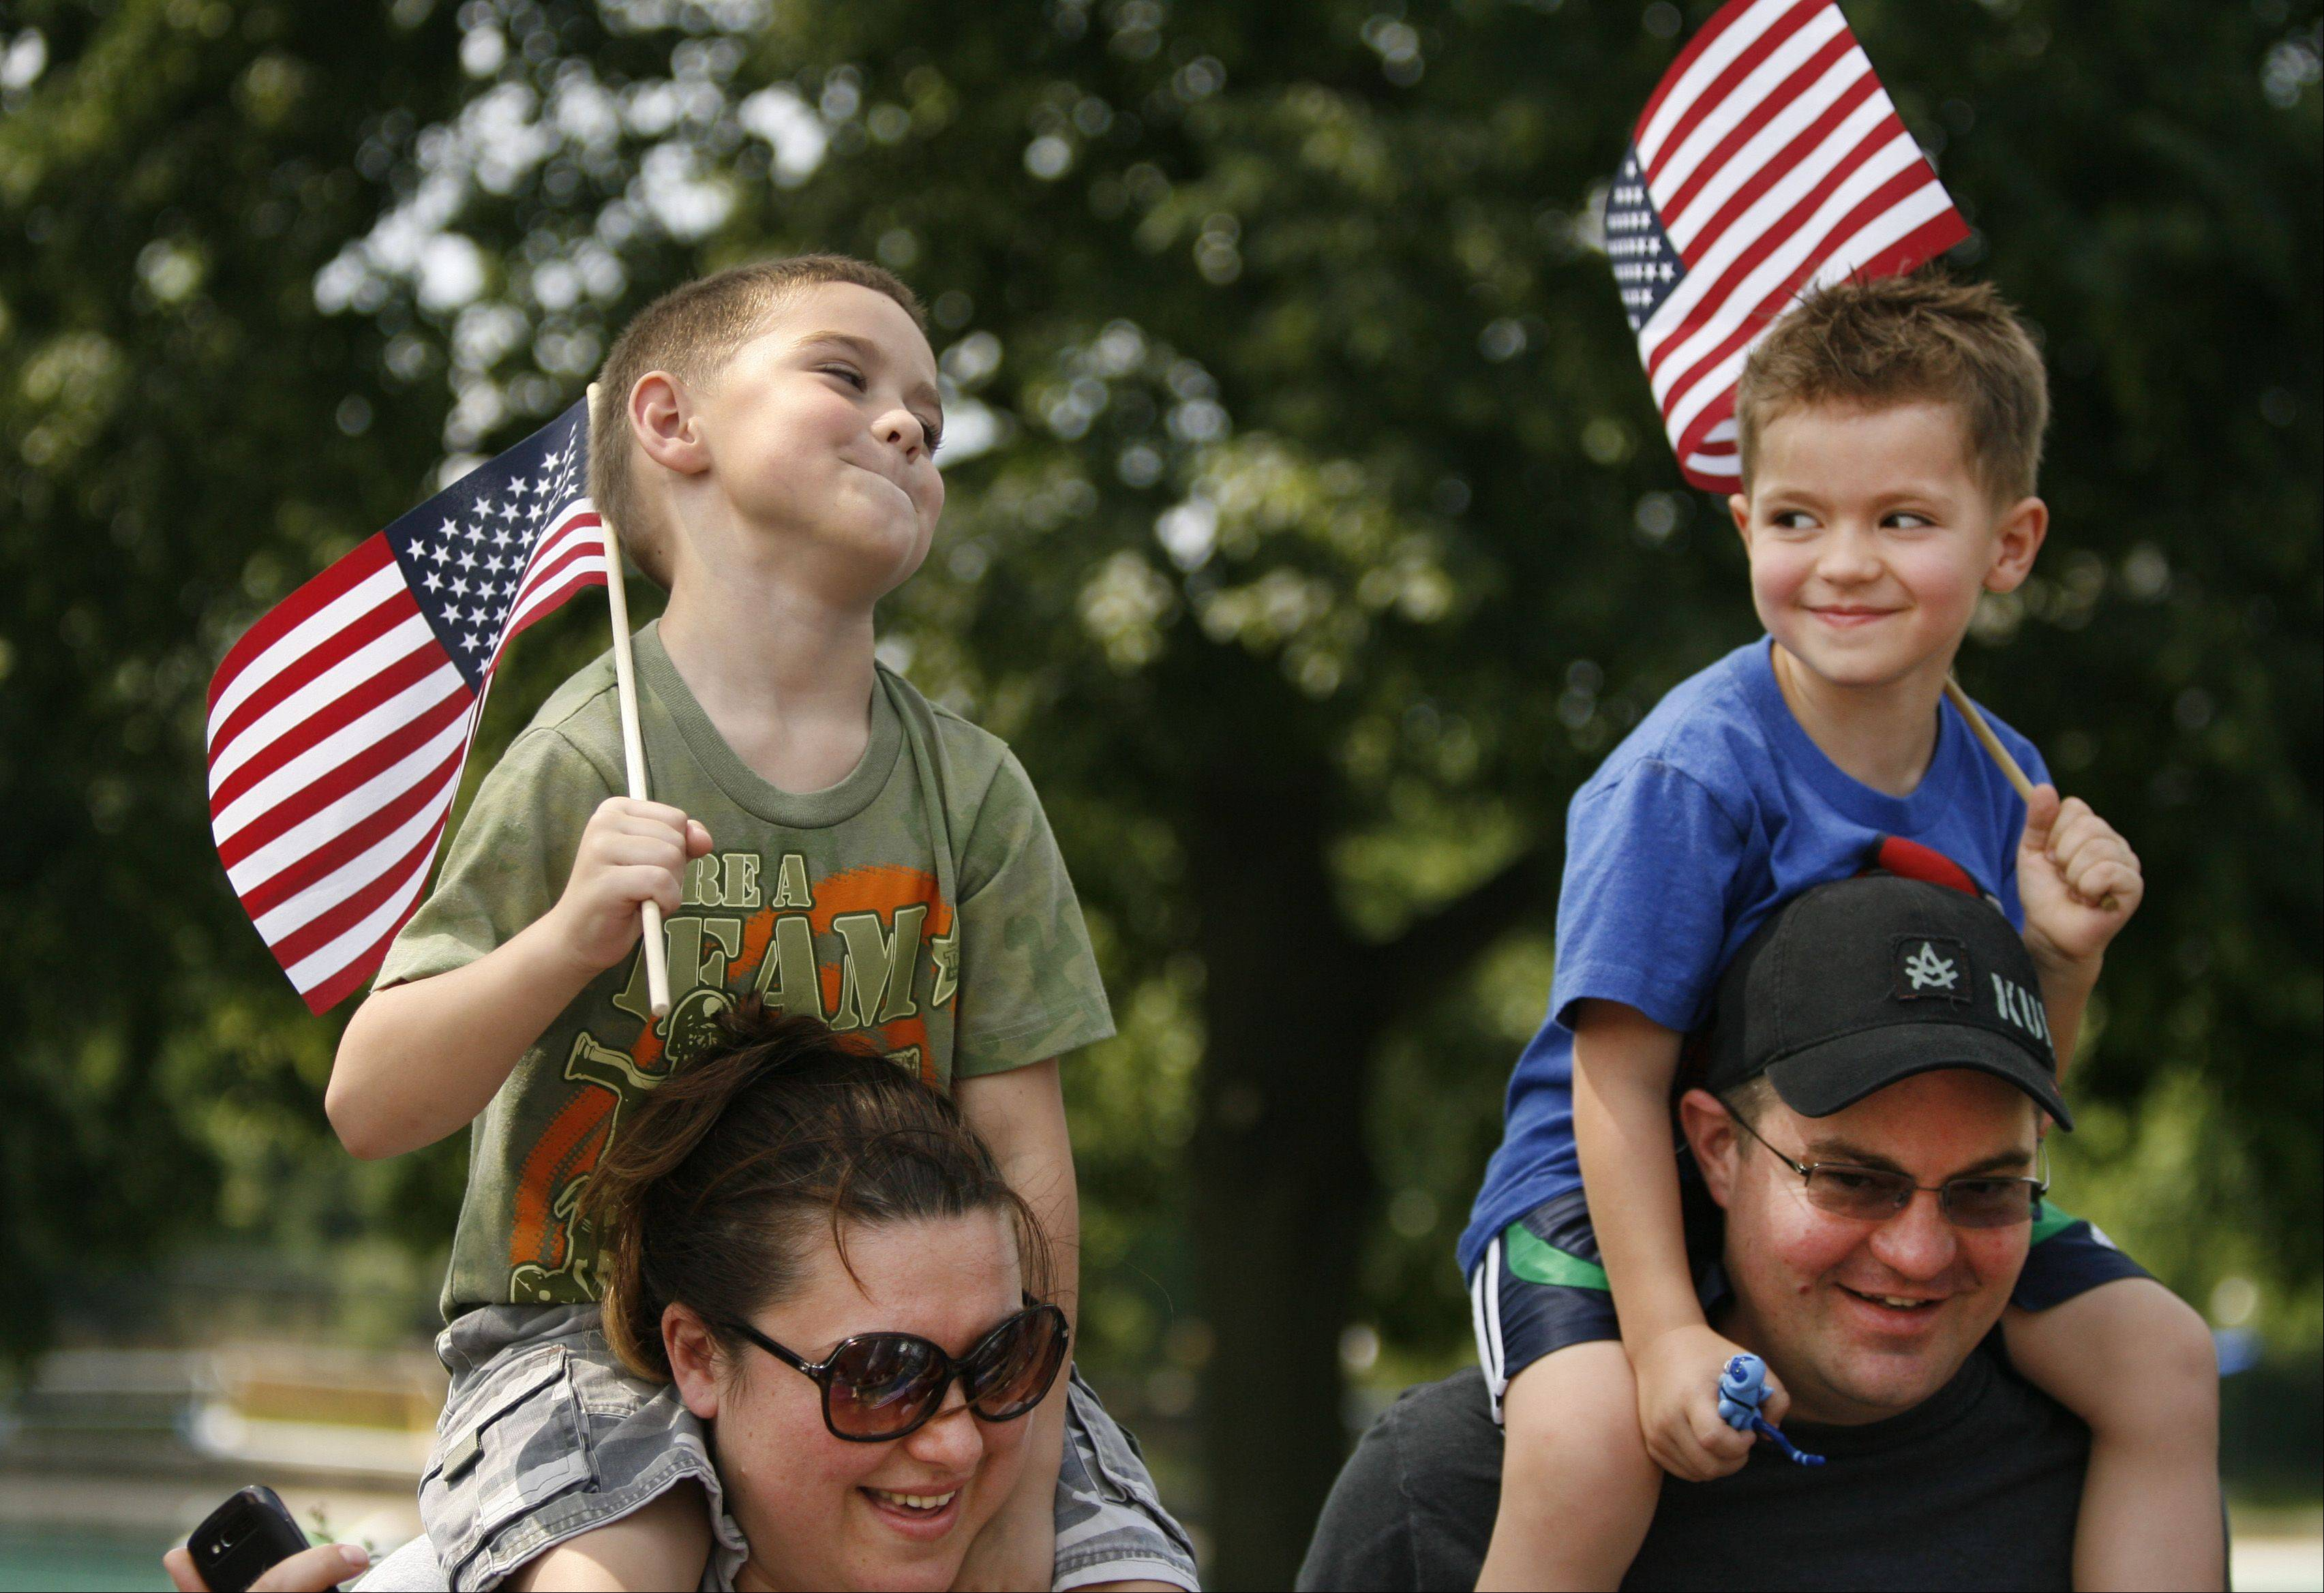 Jasmina and John O'Connor of Naperville give their boys Milan, 5, and Nikola, 4, a higher view to watch the Naperville Memorial Day parade.